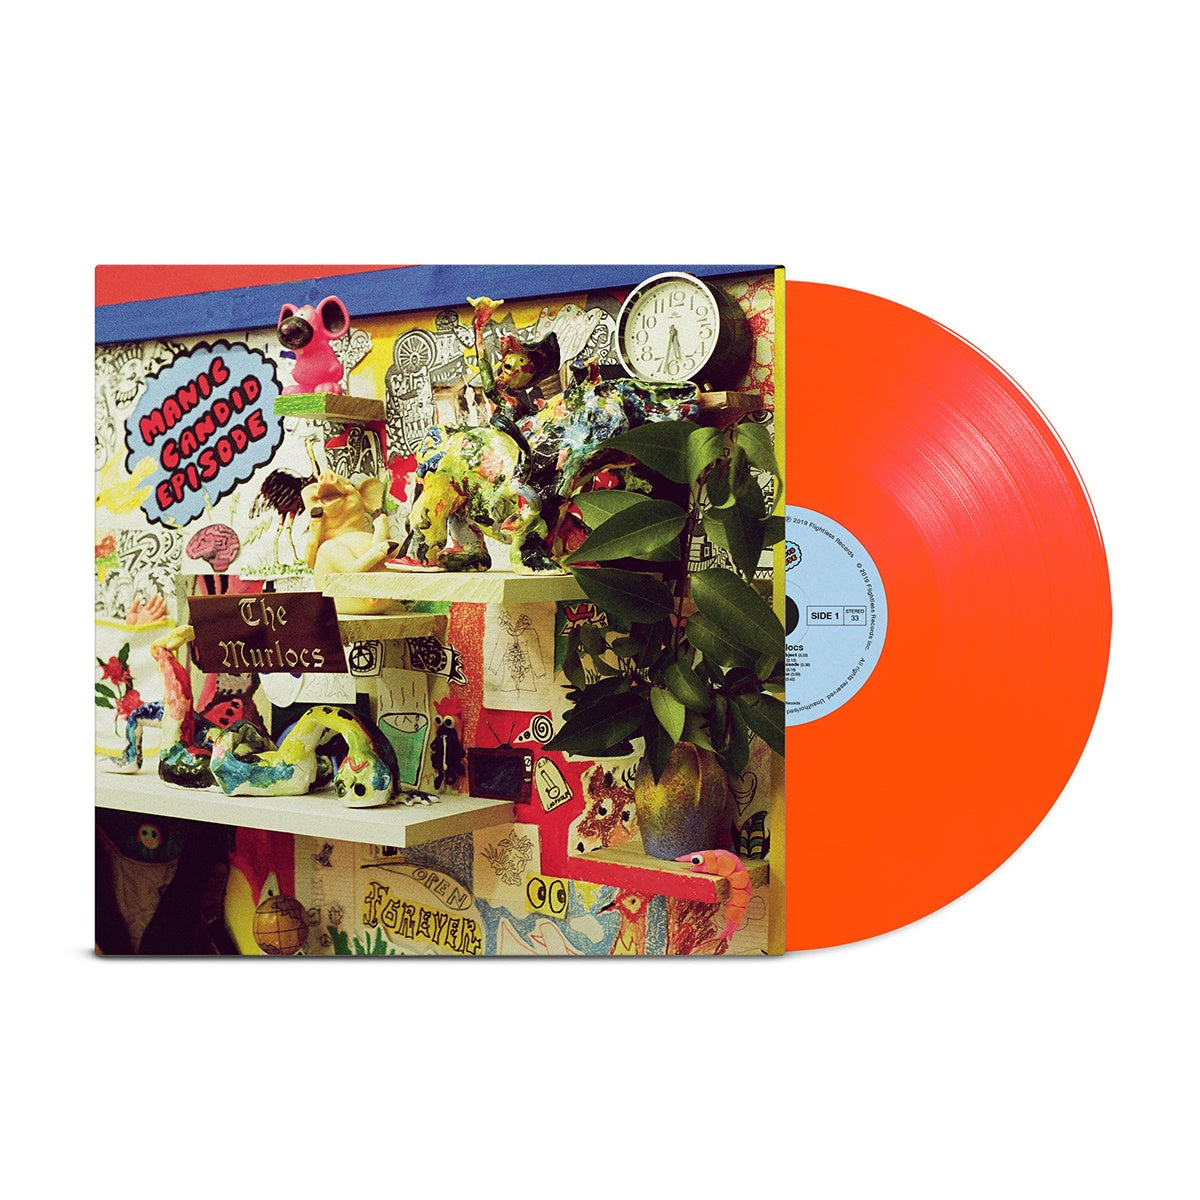 The Murlocs - Manic Candid Episode - New Lp Record 2019 ATO USA Neon Orange Vinyl & Download - Garage Rock / Psychedelic Rock (King Gizzard & The Lizard Wizard Members)